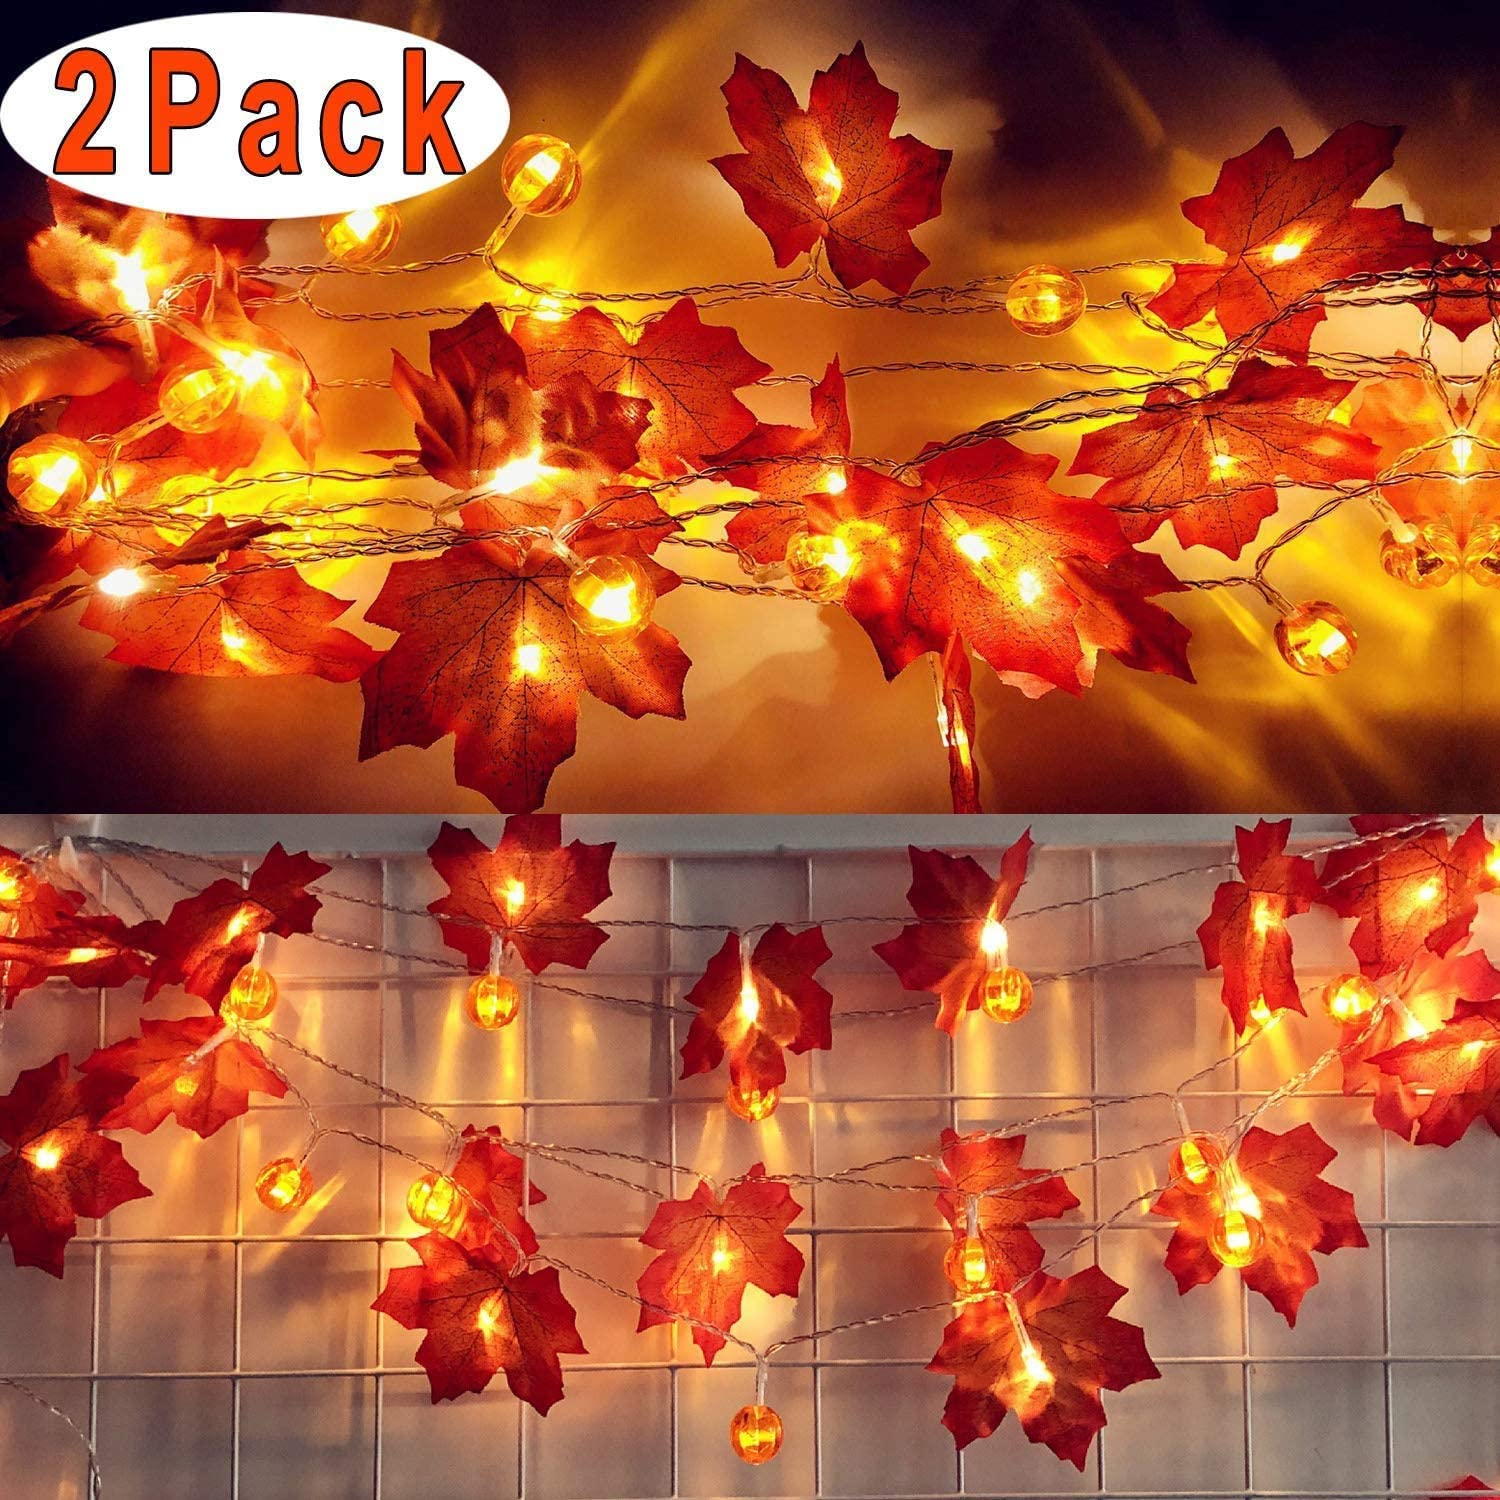 2 Pack Thanksgiving Decoration Pumpkin & Maple Leaf String Lights Halloween Fall Decoration Seasonal Light Indoor Outdoor Decor, (5 ft with 10 LED, Totally 10 ft 20 LED)